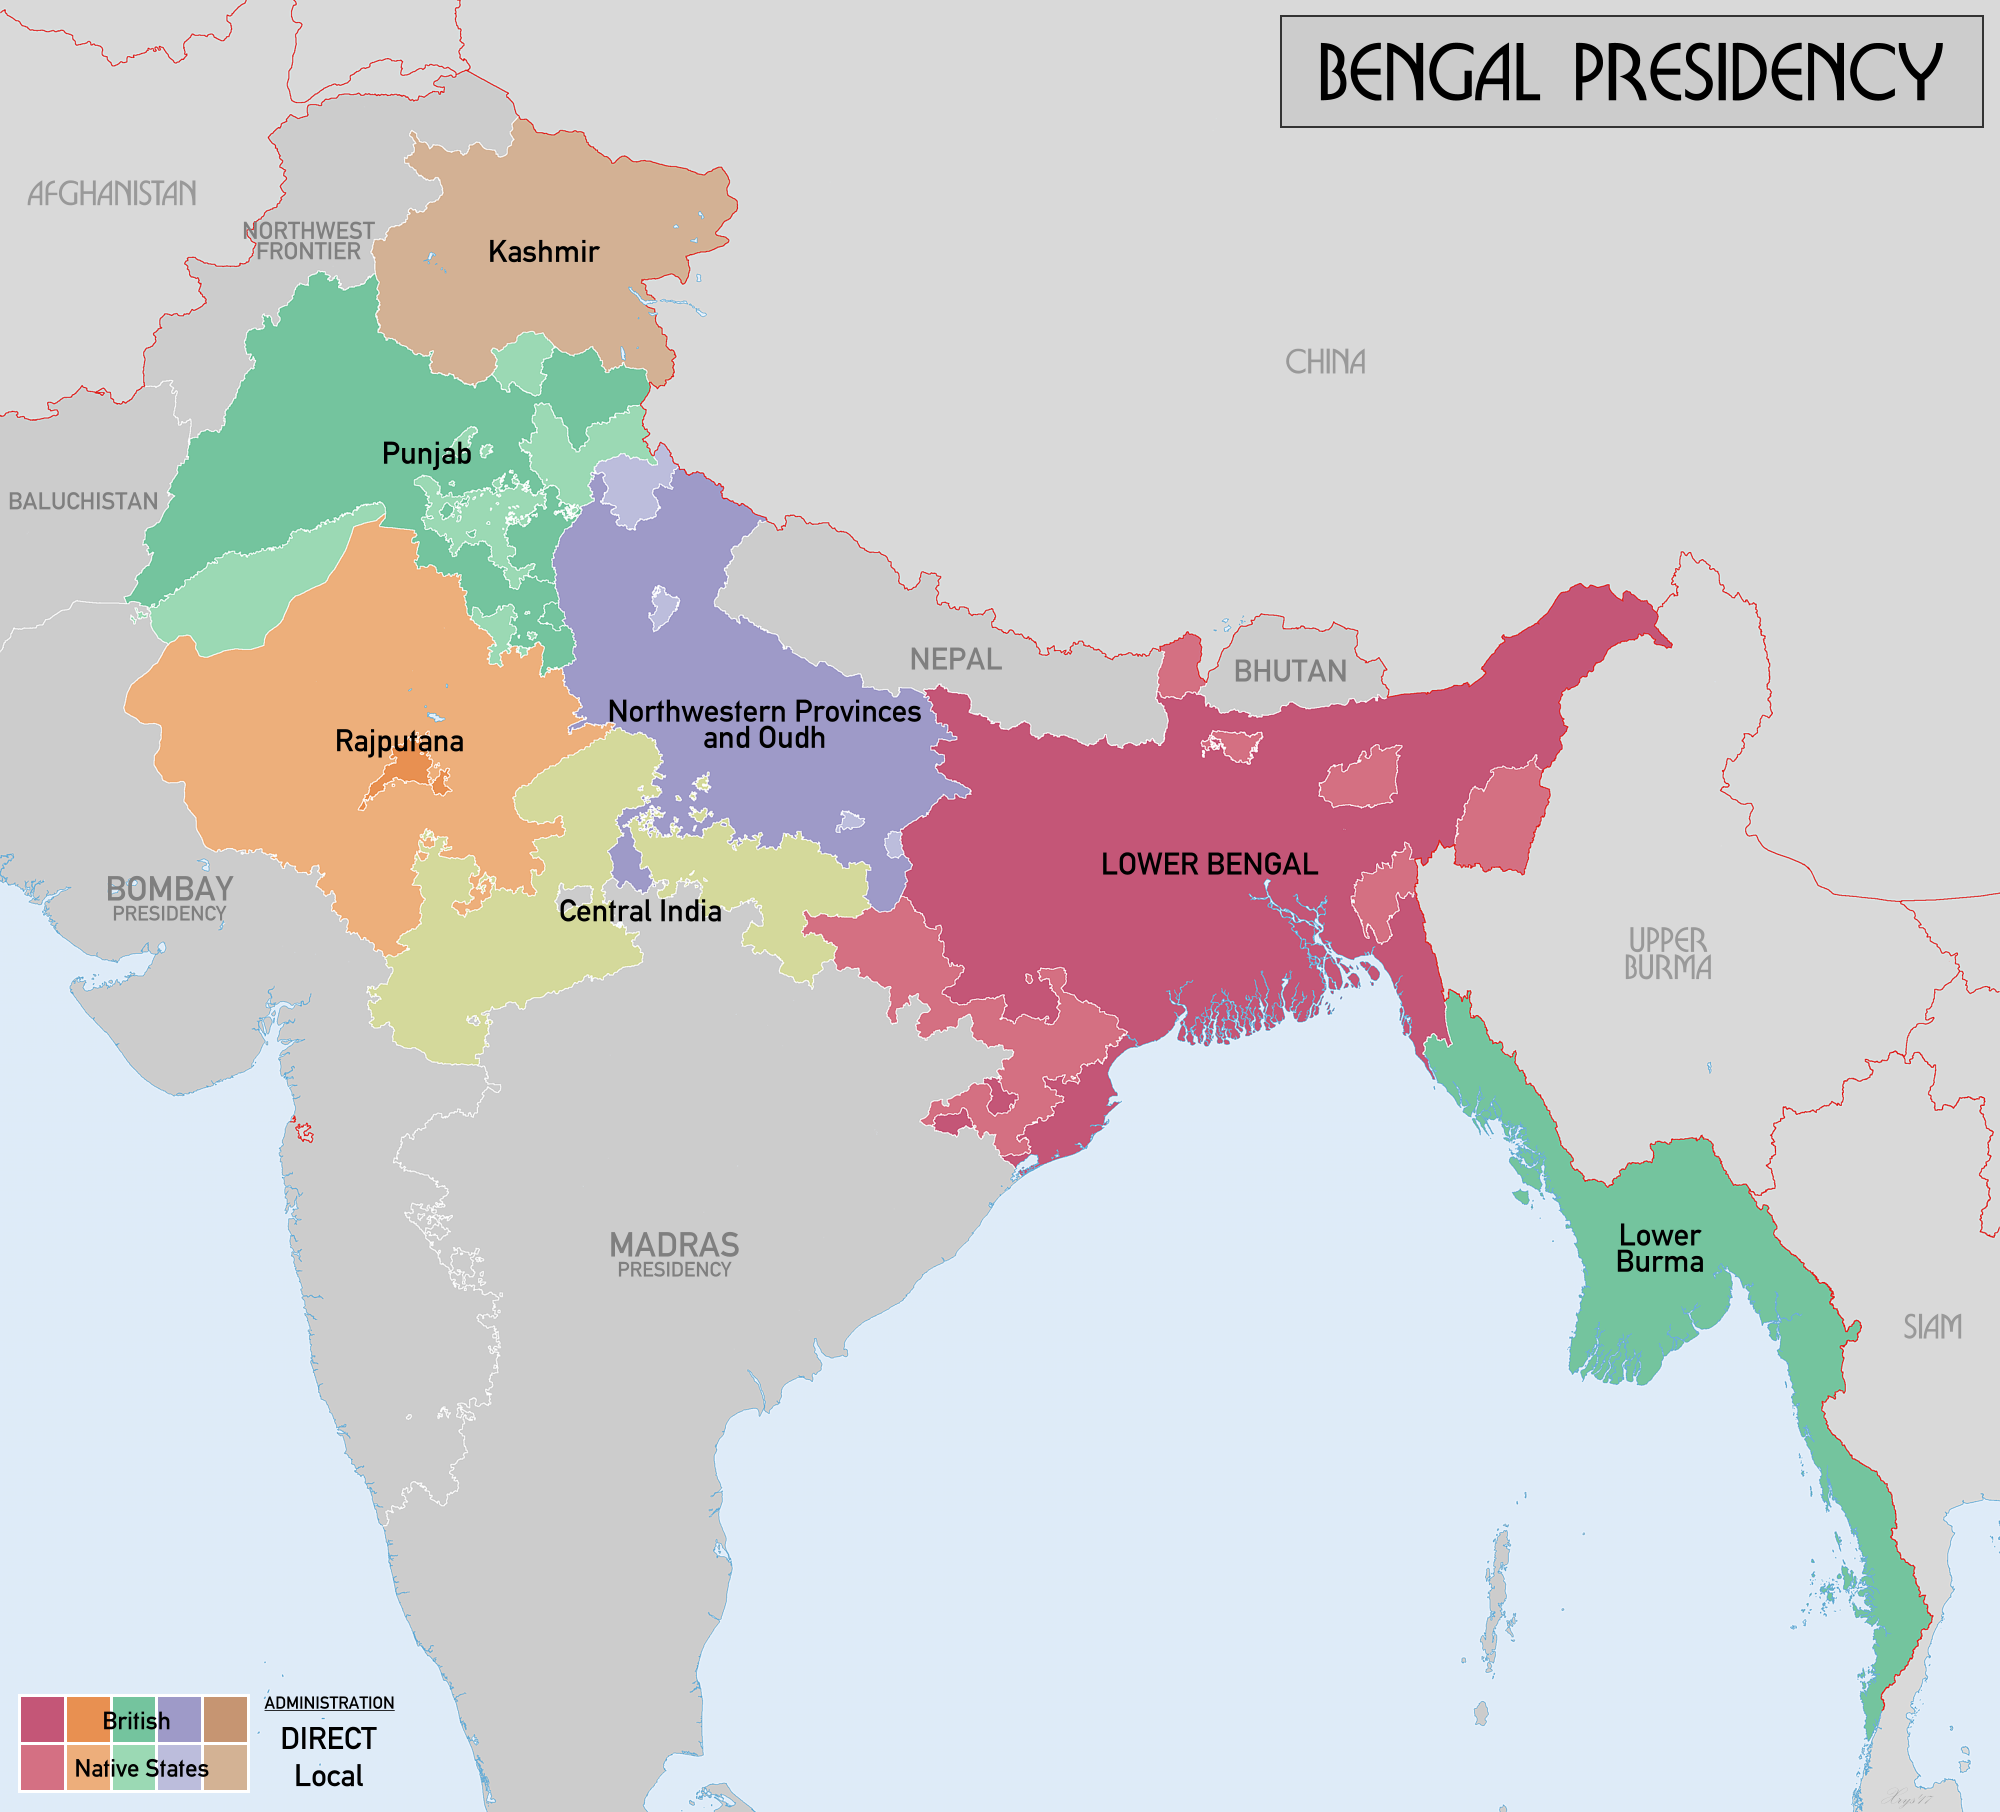 Map of Bengal Presidency within British India